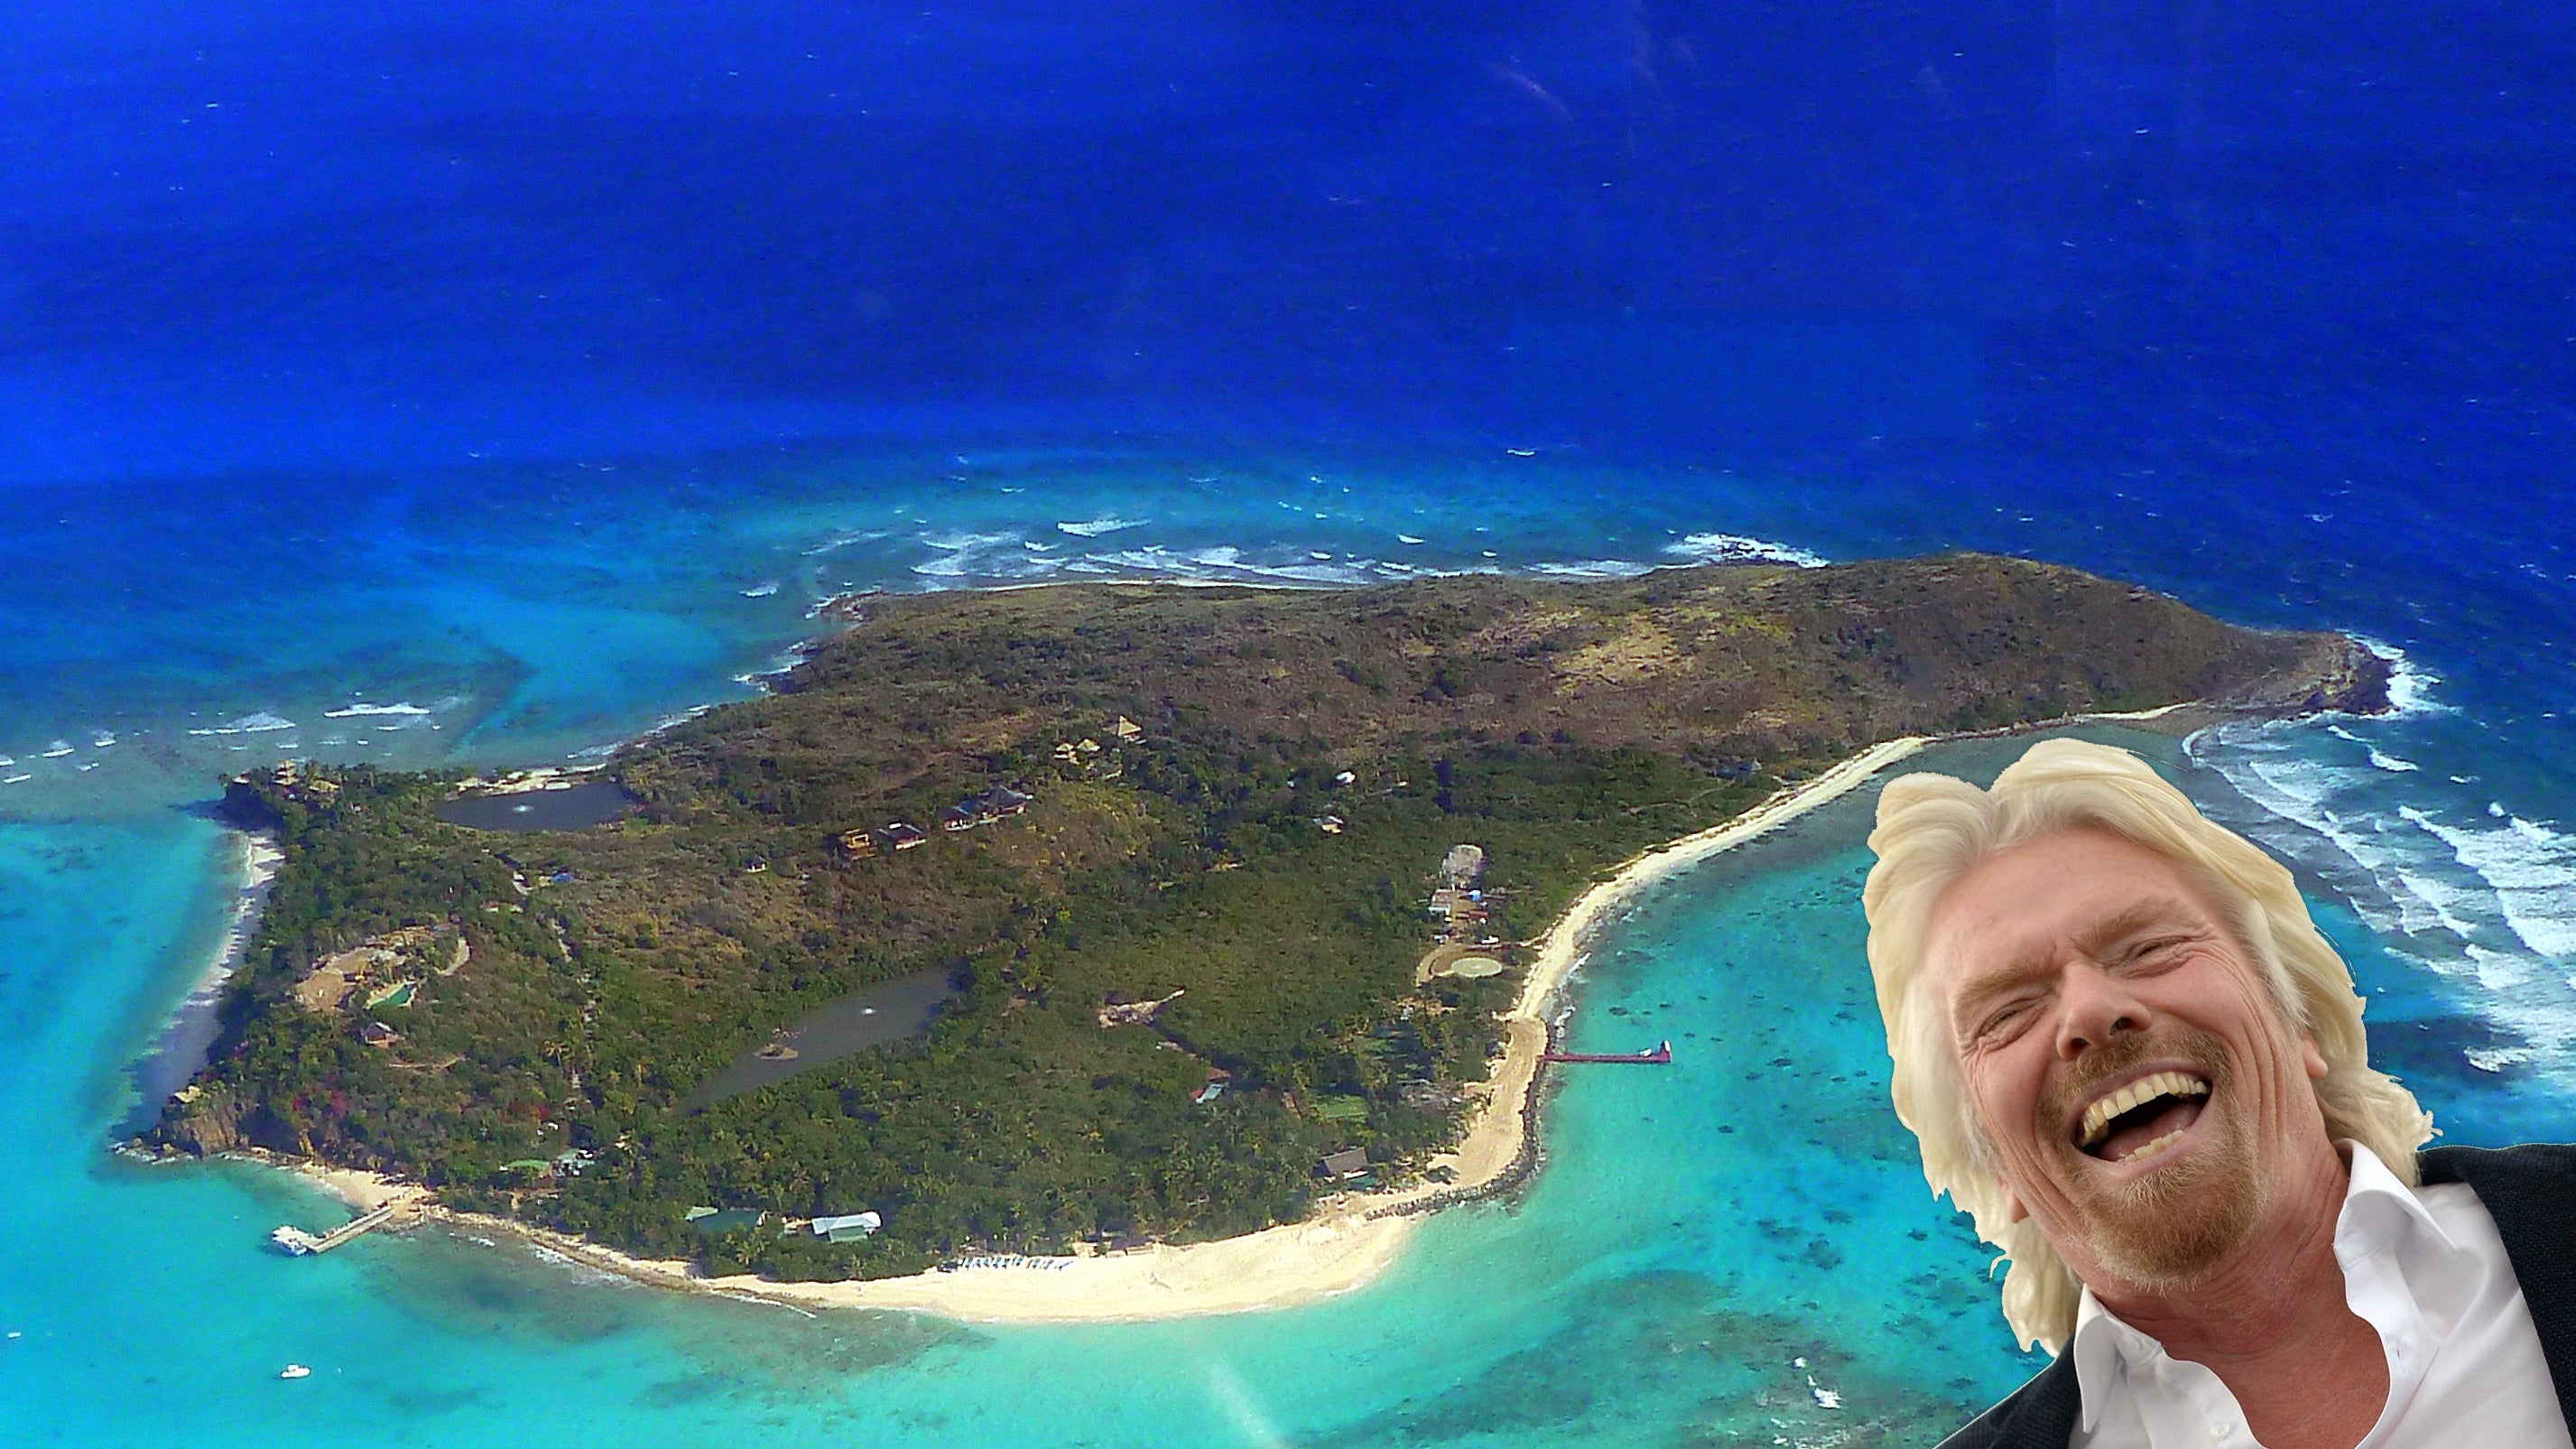 Richard Branson Will Ride Out Hurricane Irma In His Wine Cellar